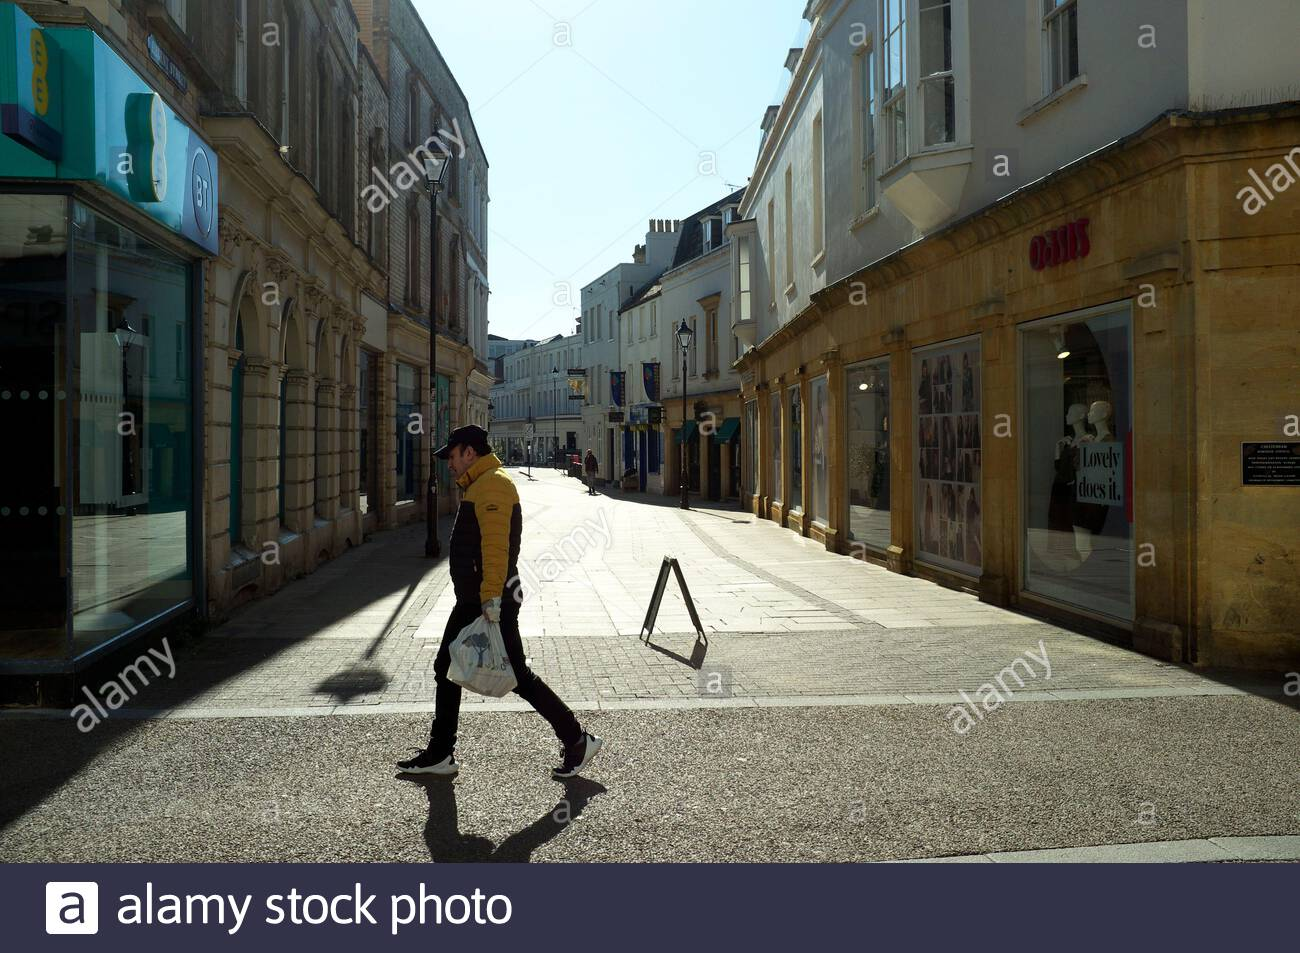 covid-19-coronavirus-pandemic-town-centre-scene-during-a-weekday-afternoon-in-cheltenham-gloucestershire-uk-23rd-march-2020-2B971P6.jpg